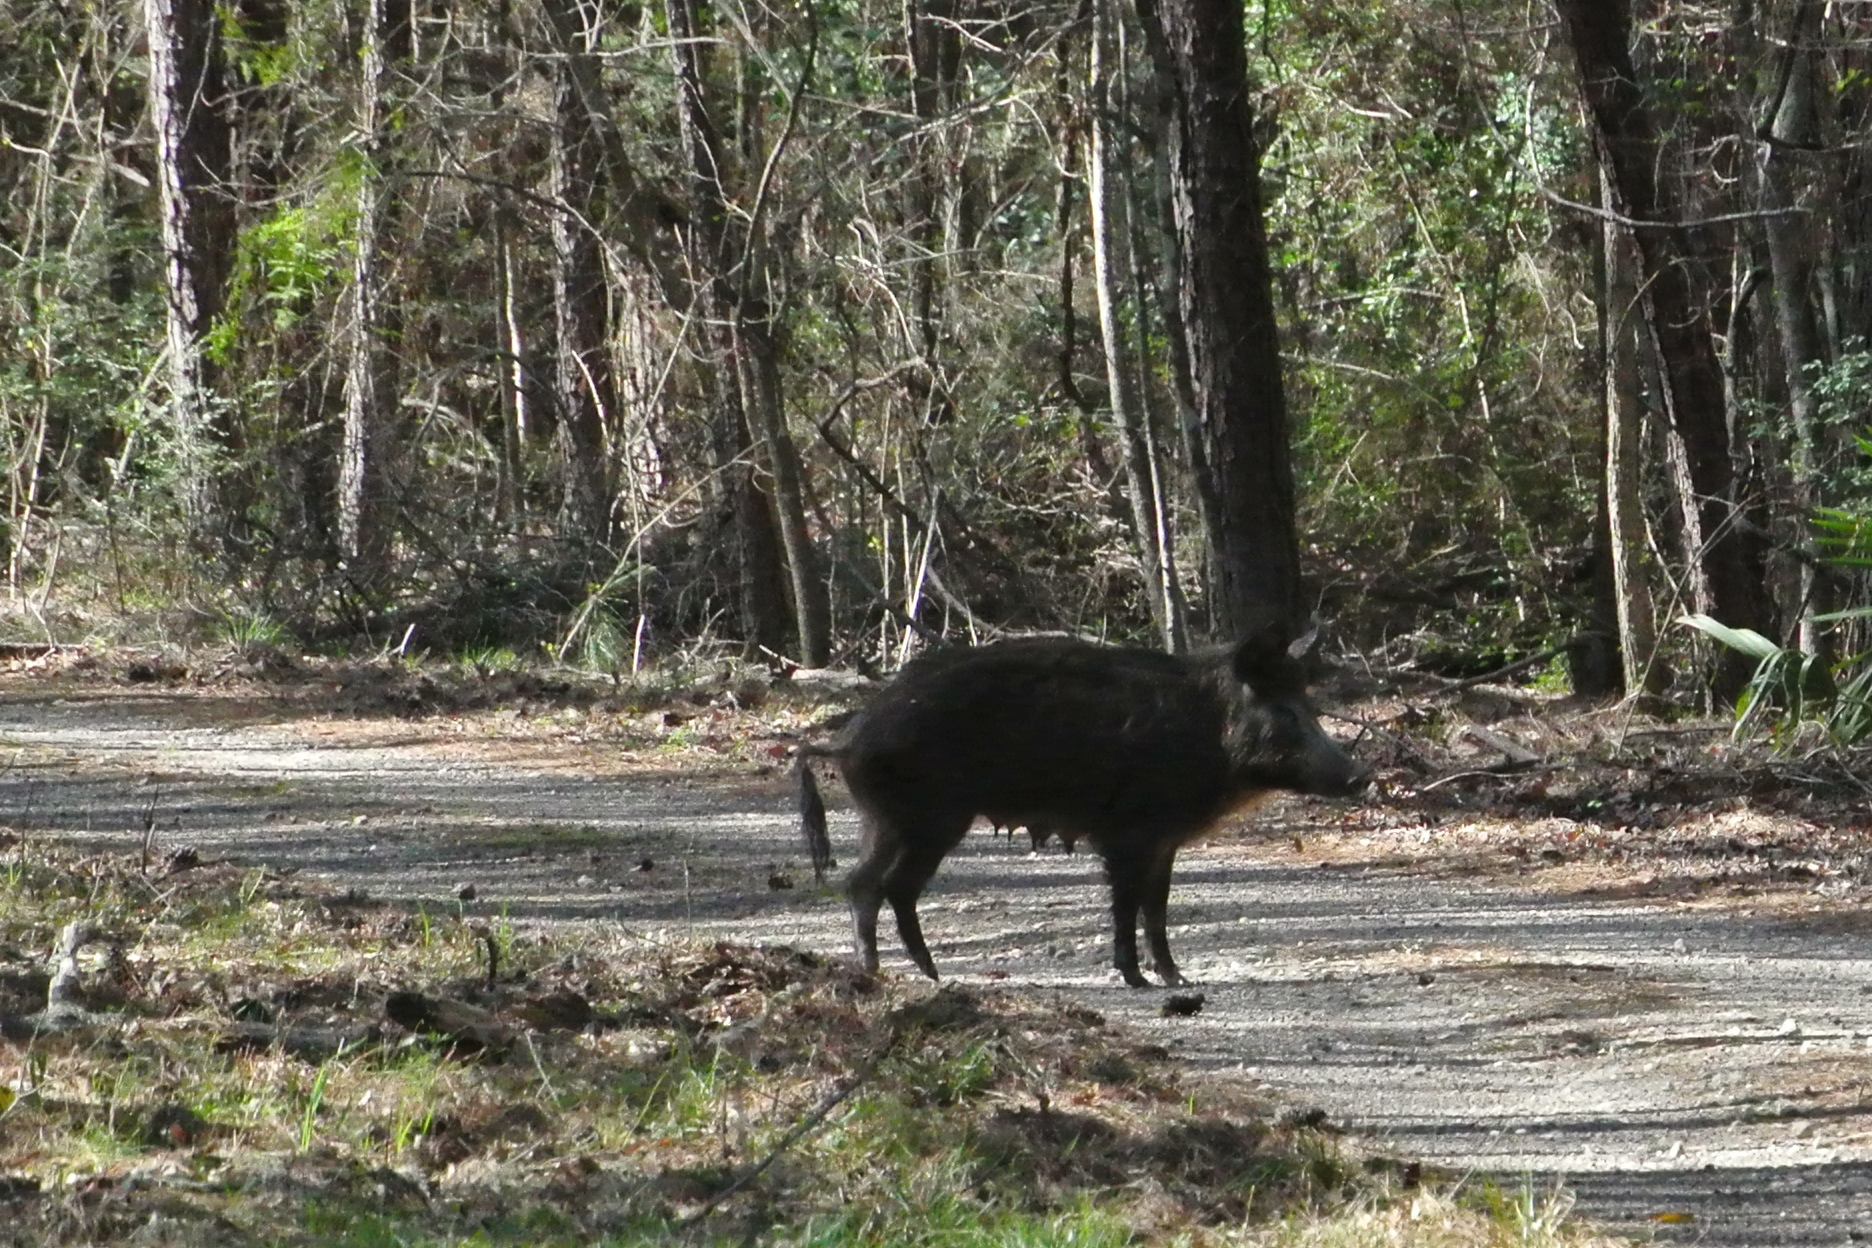 The wild sow on her way across in front of us